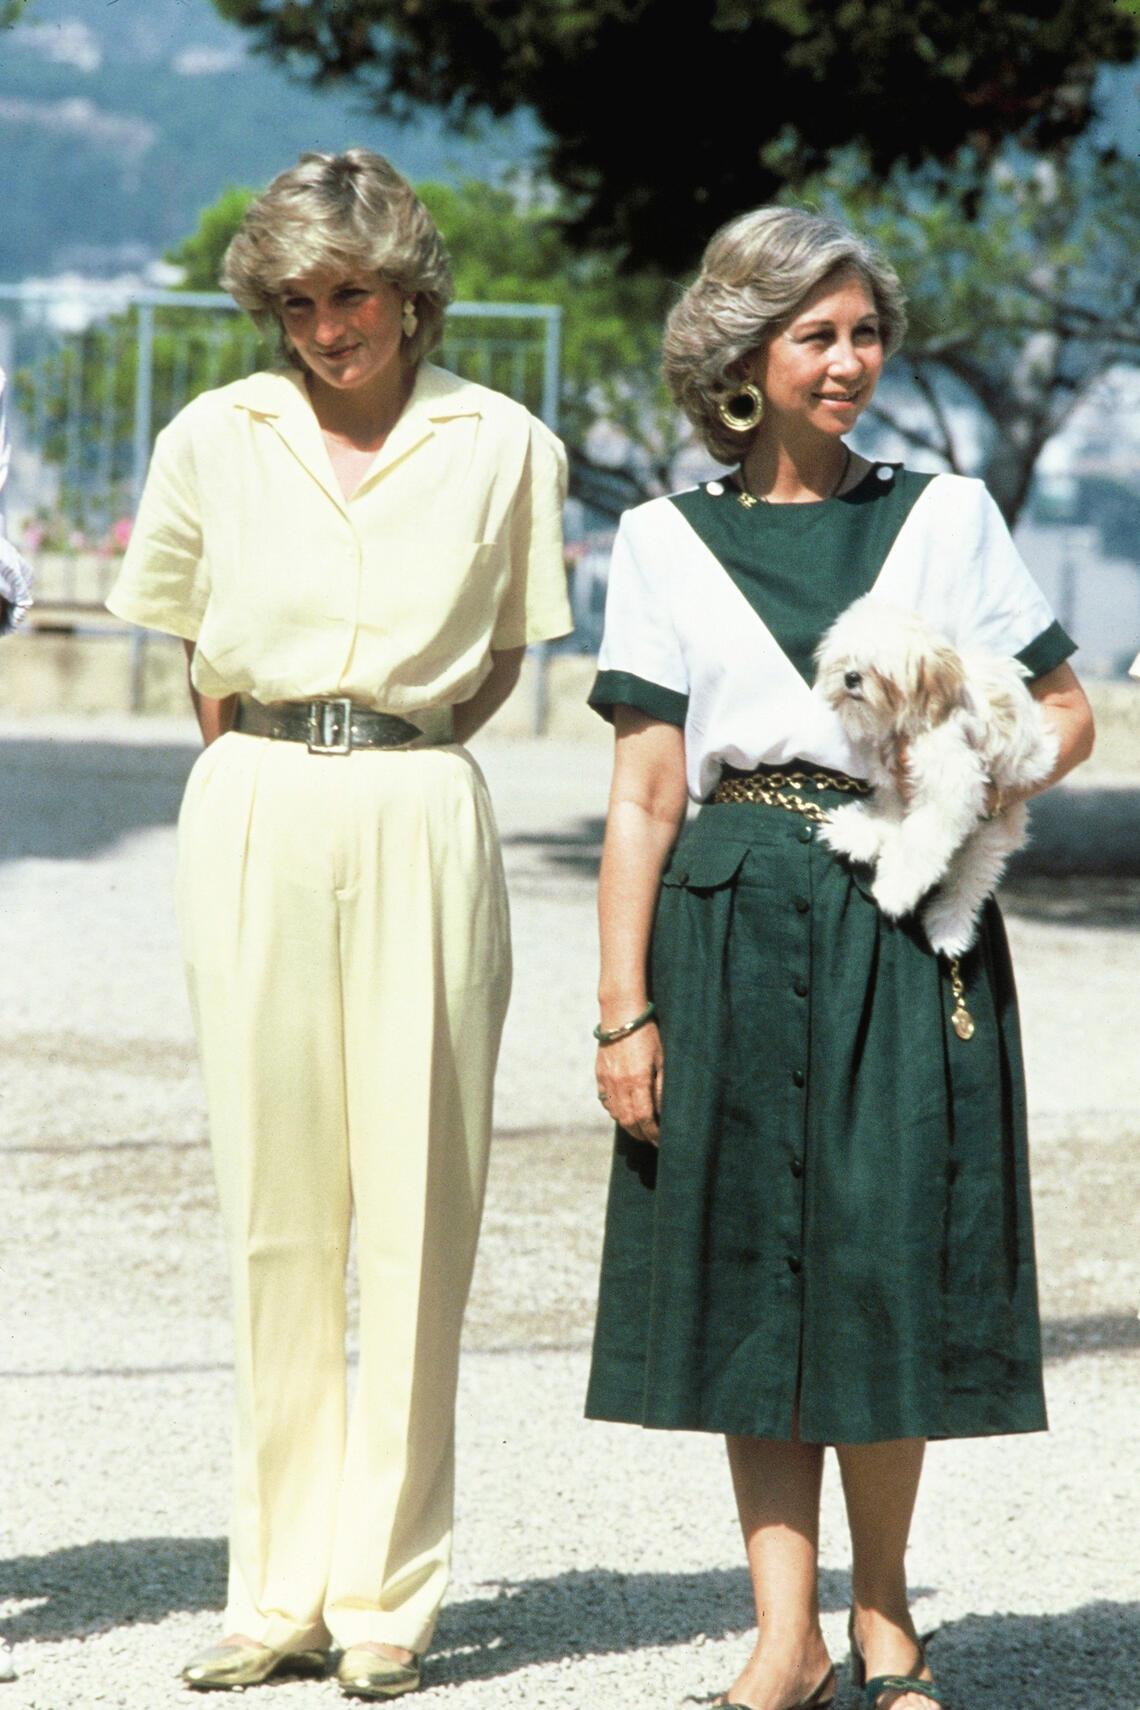 MAJORCA - AUGUST:  Princess Diana and Queen Sofia of Spain on holiday in Majorca where the Princess stayed with the Spanish Royal Family. 10 August, 1987.    (Photo by Anwar Hussein/WireImage)